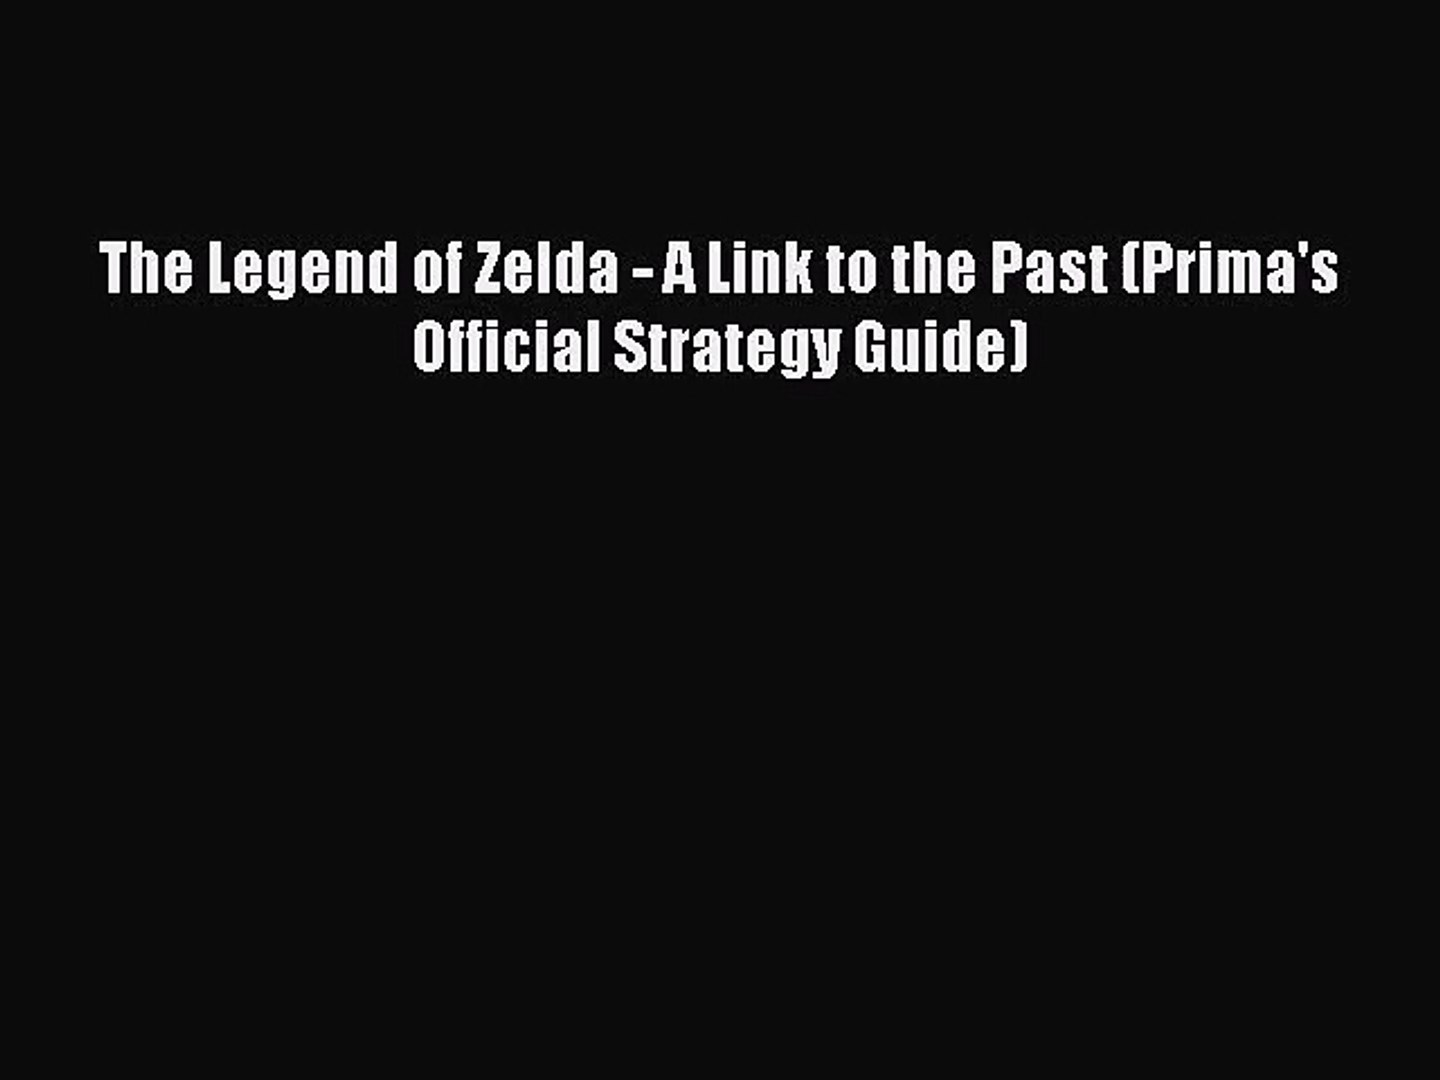 Pdf Download The Legend Of Zelda A Link To The Past